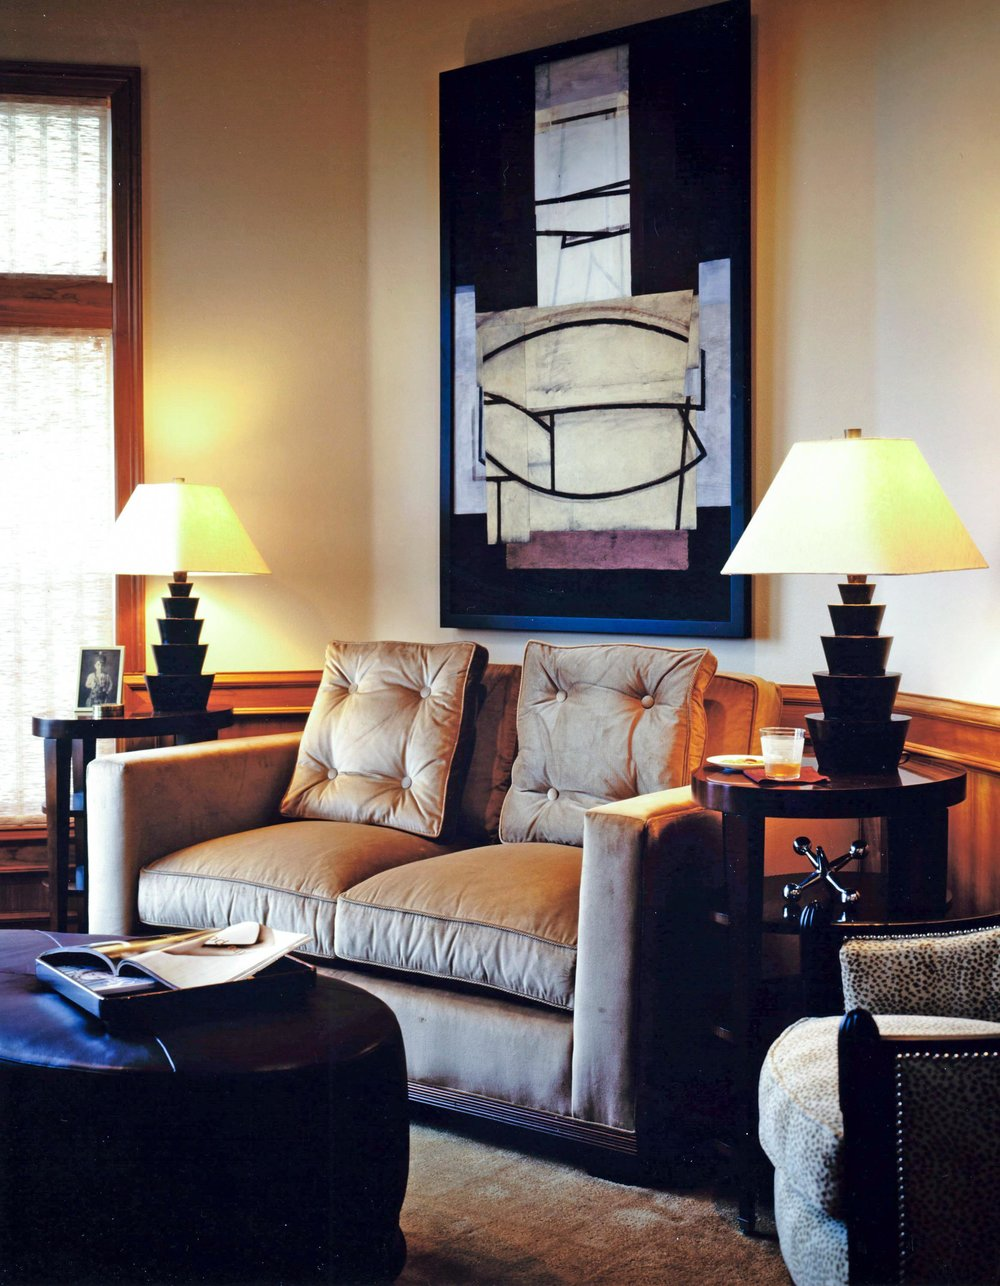 Living room with sofa, round side table each side of sofa, table lamp and artwork on wall